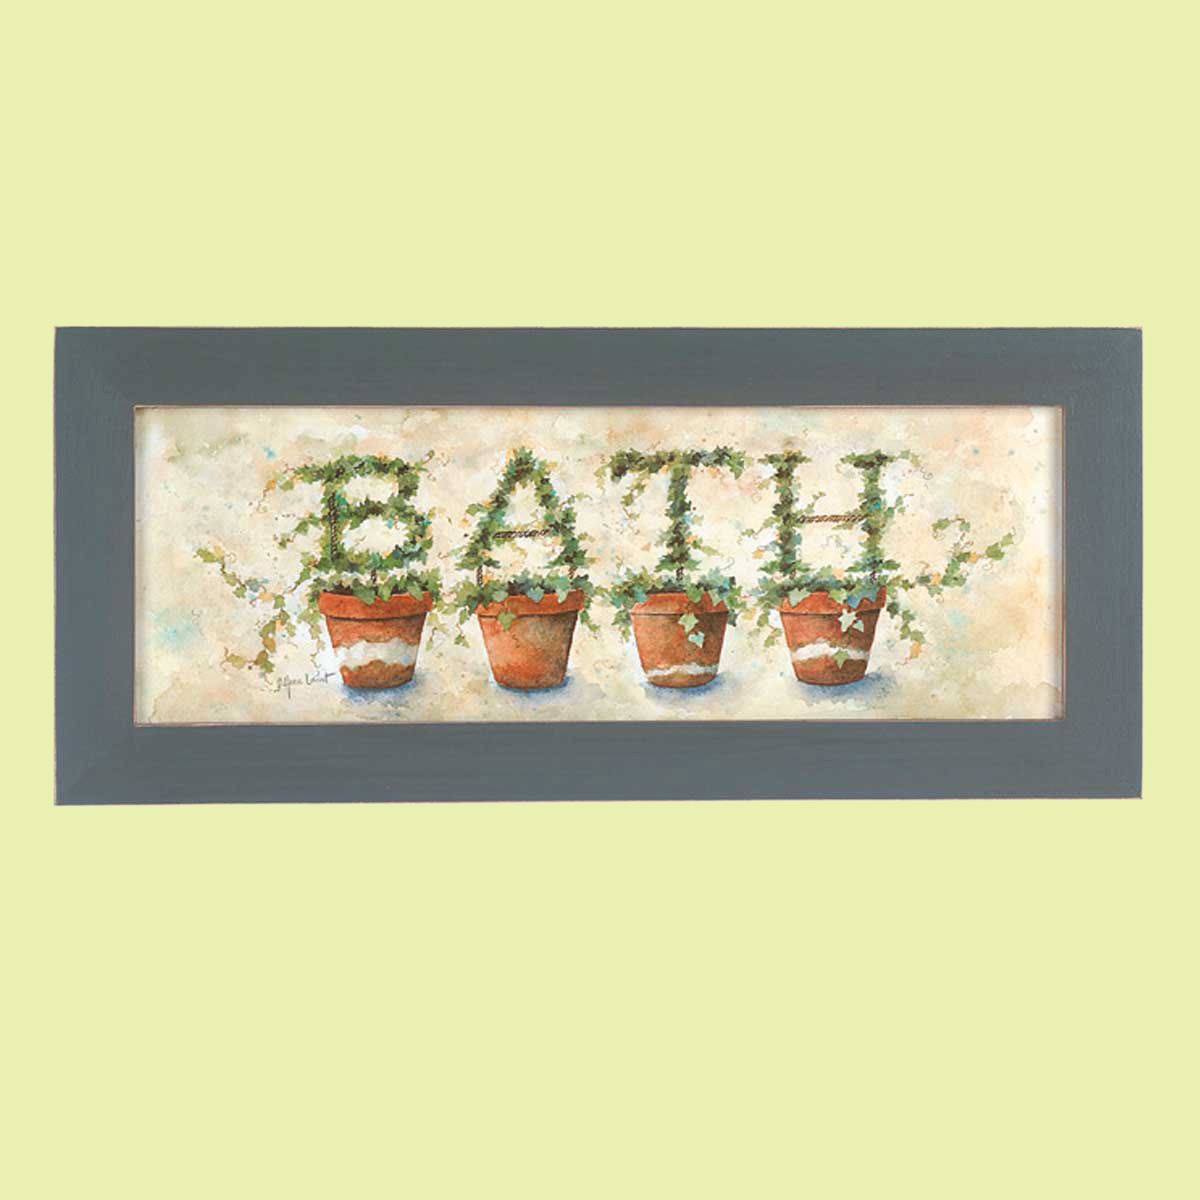 Wall Hanging Print Crackle Wood Ivy Topiary 8.5\